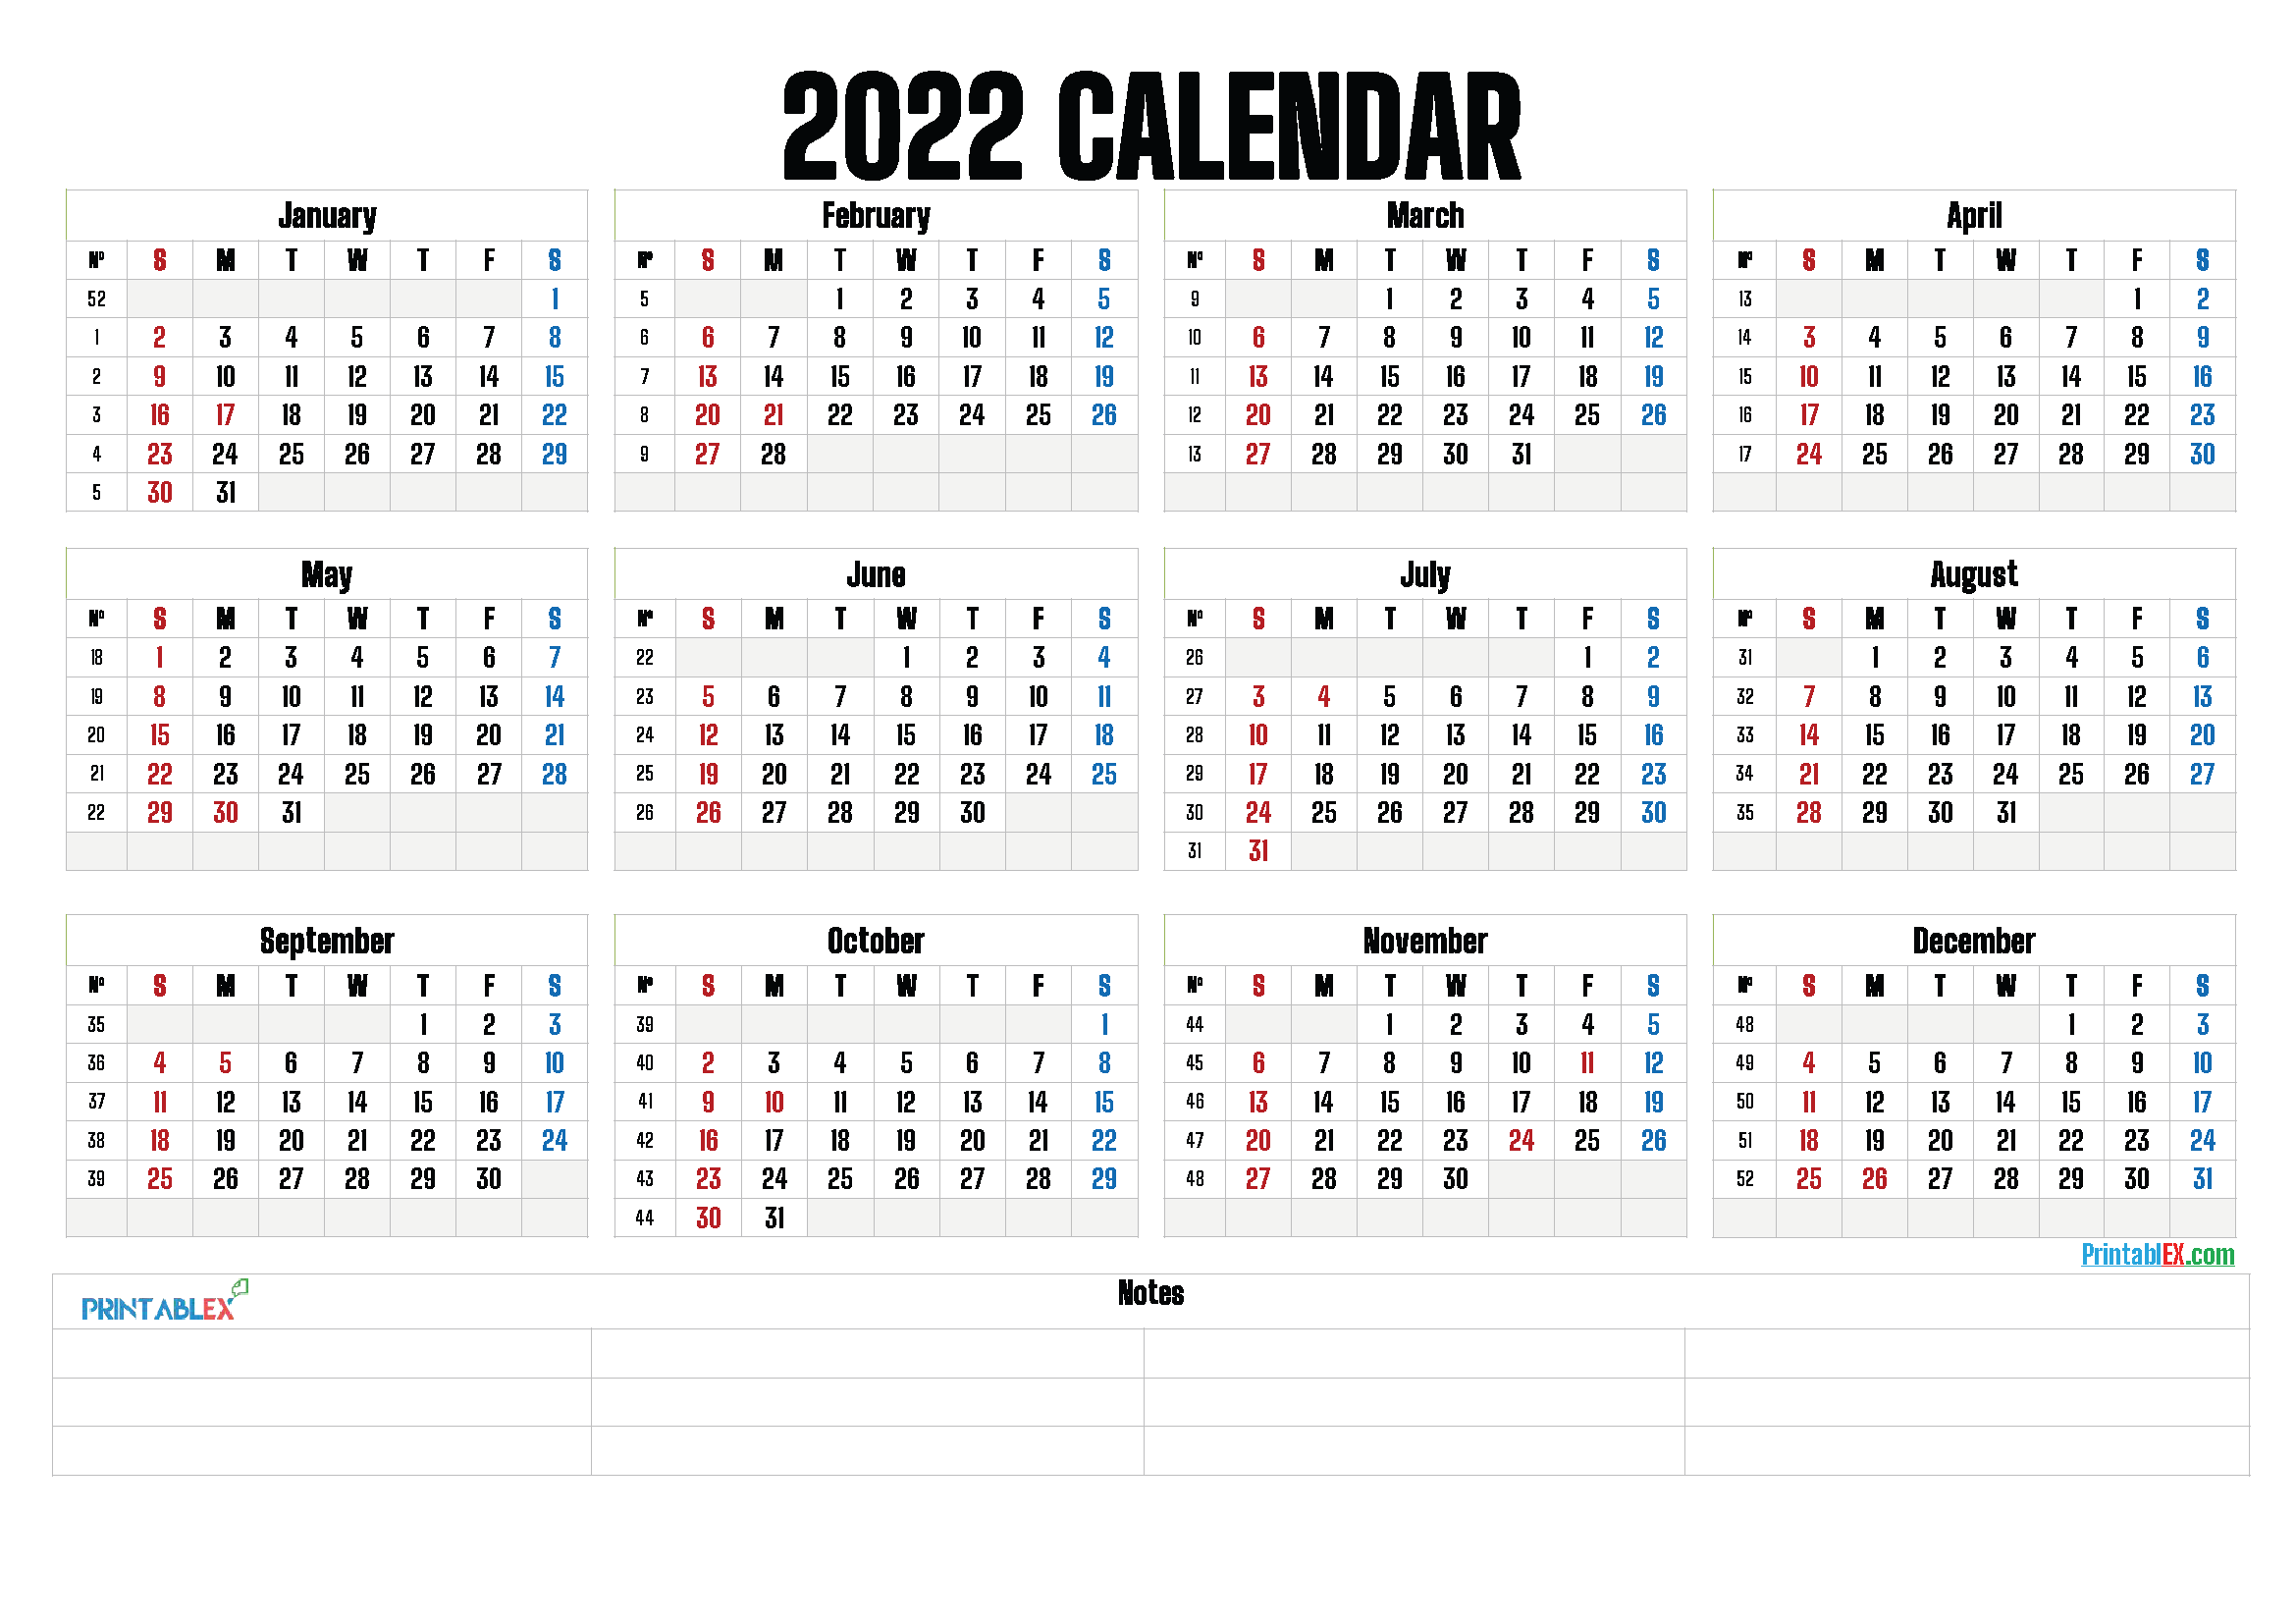 Printable 2022 Yearly Calendar with Week Numbers (Font: lilac)